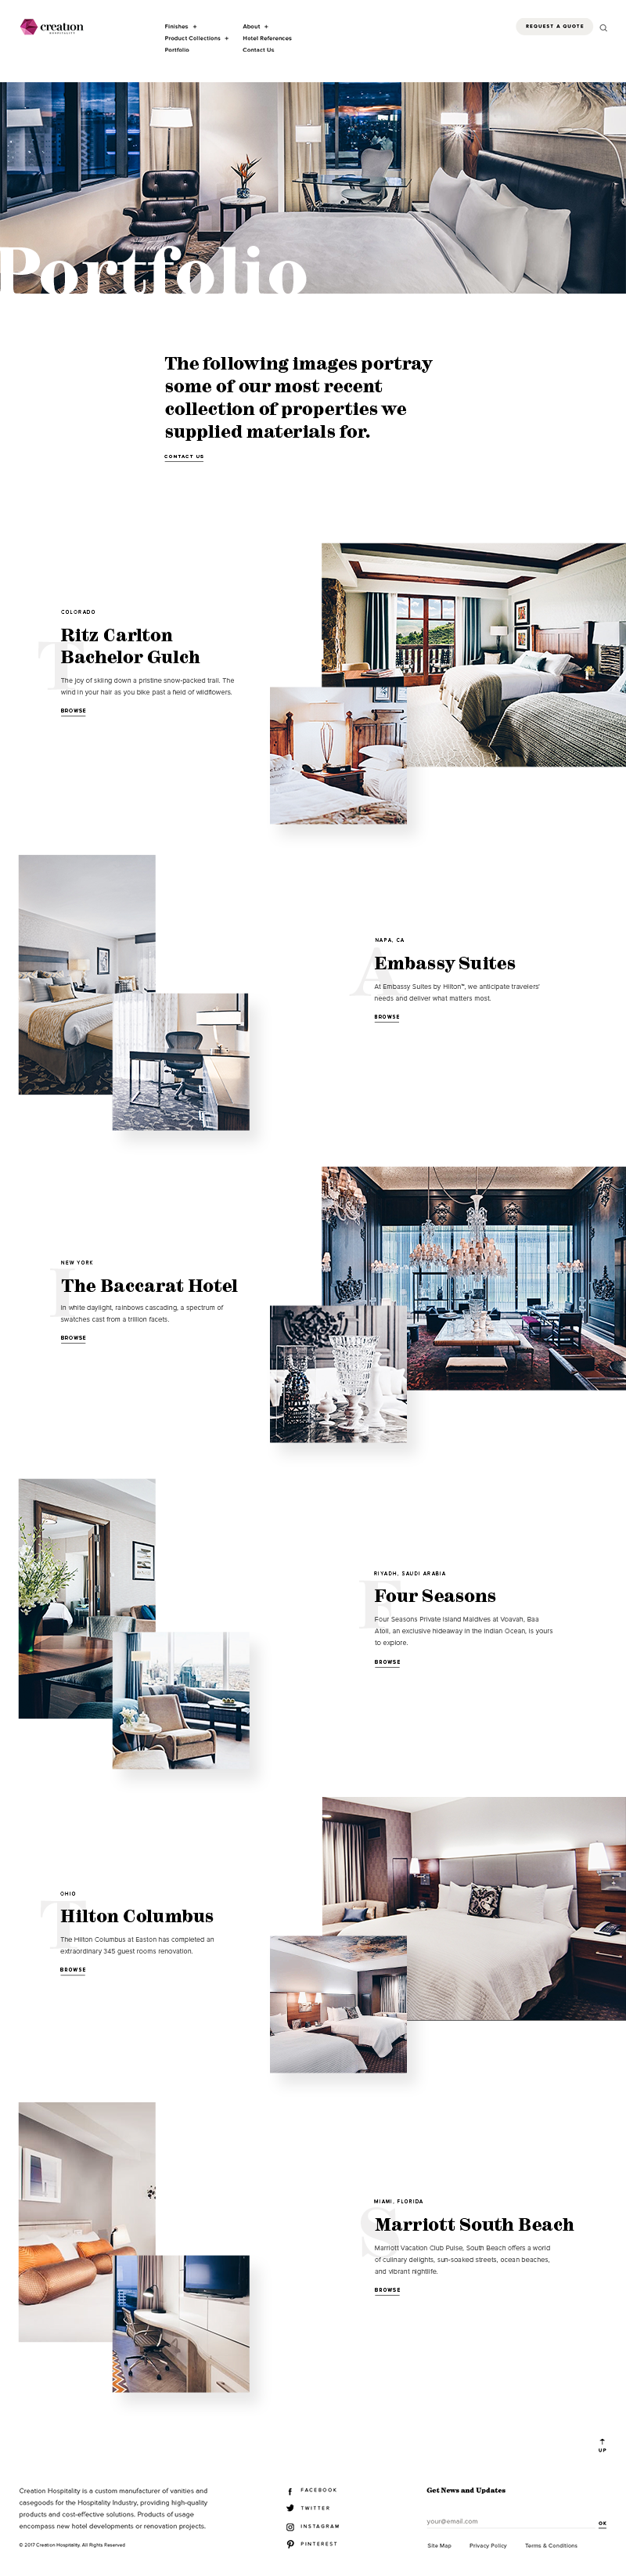 Creation Hospitality Web Design